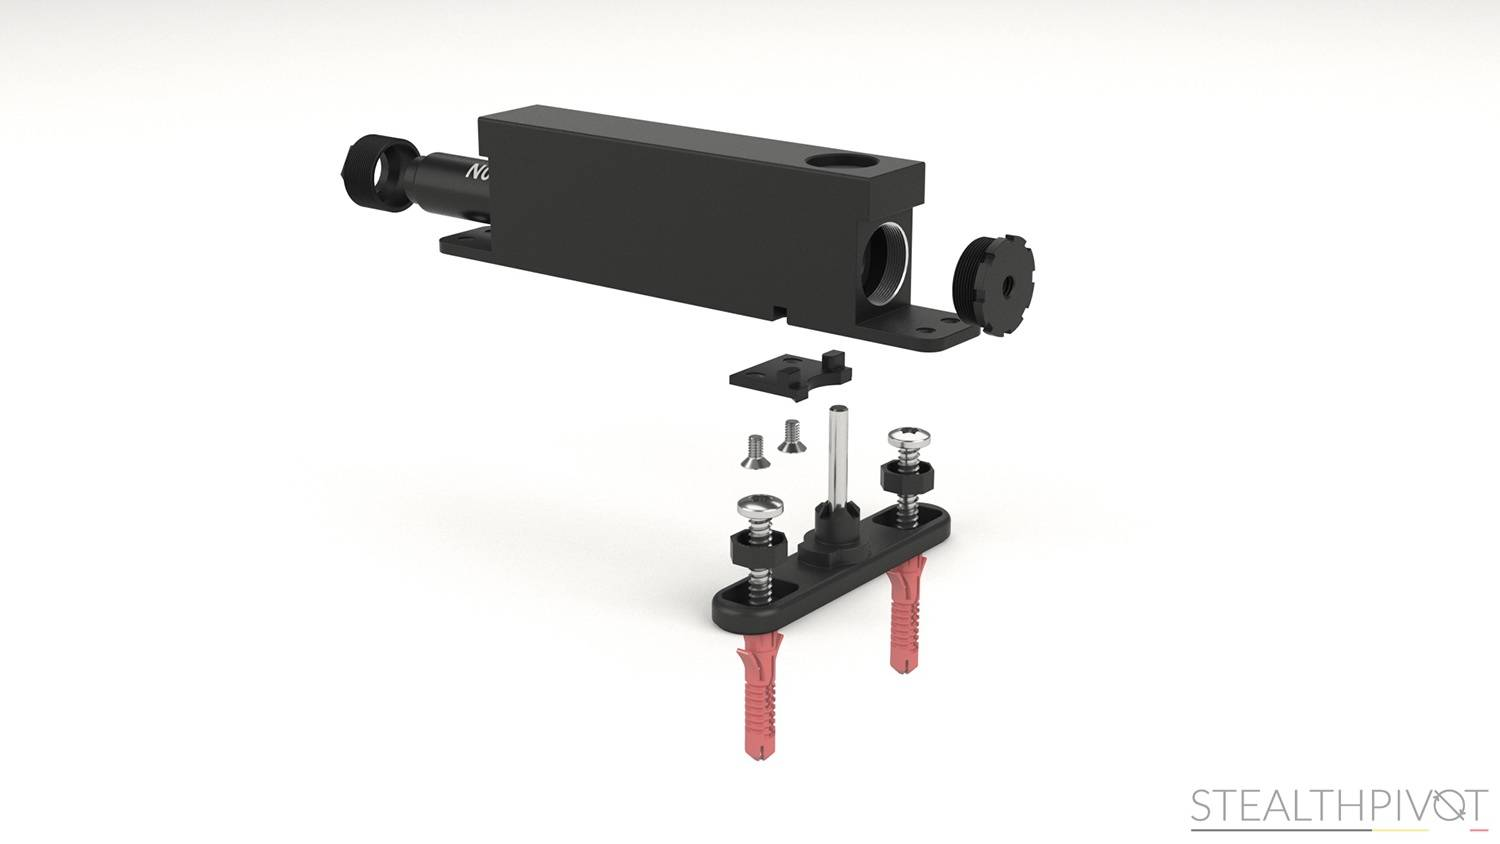 Stealth Pivot NL exploded view